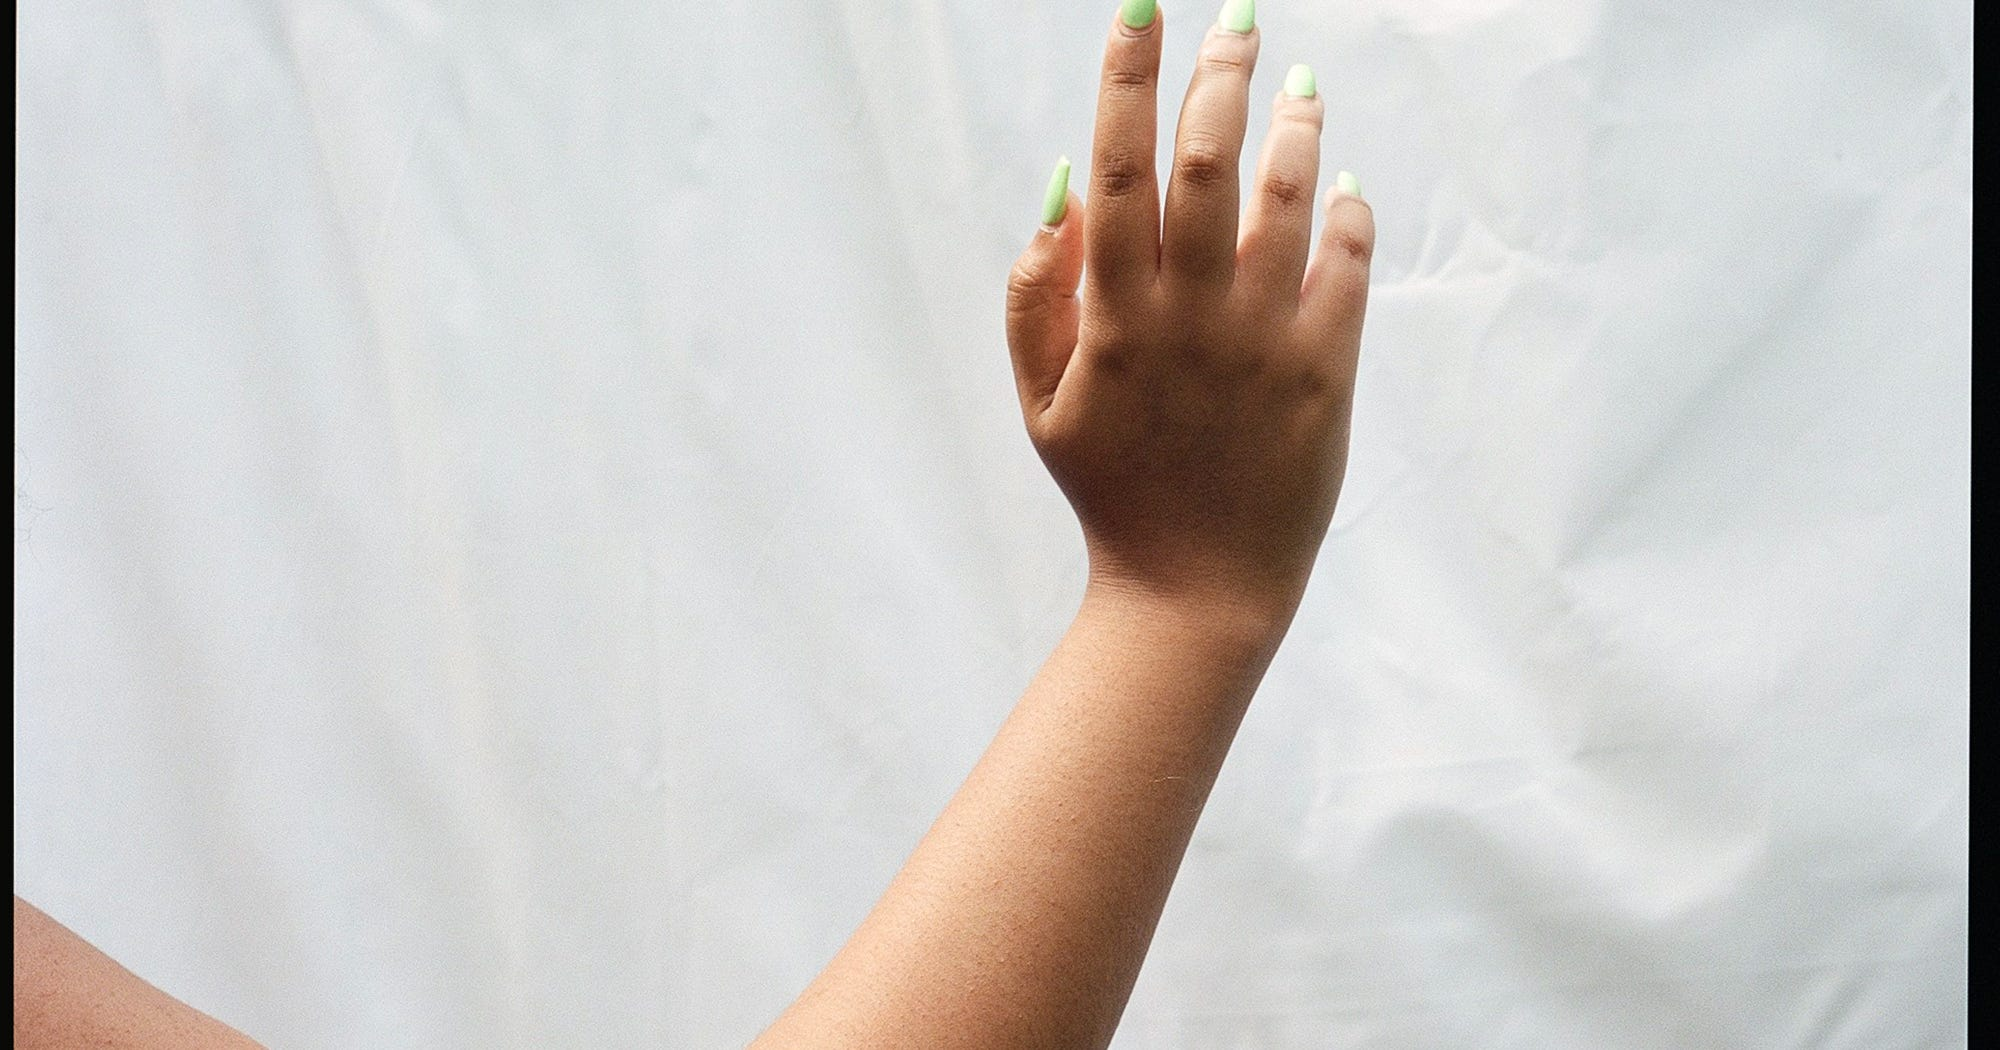 How Acrylic Nails Went From Working Class Salons To The Fingers Of The Middle Classes